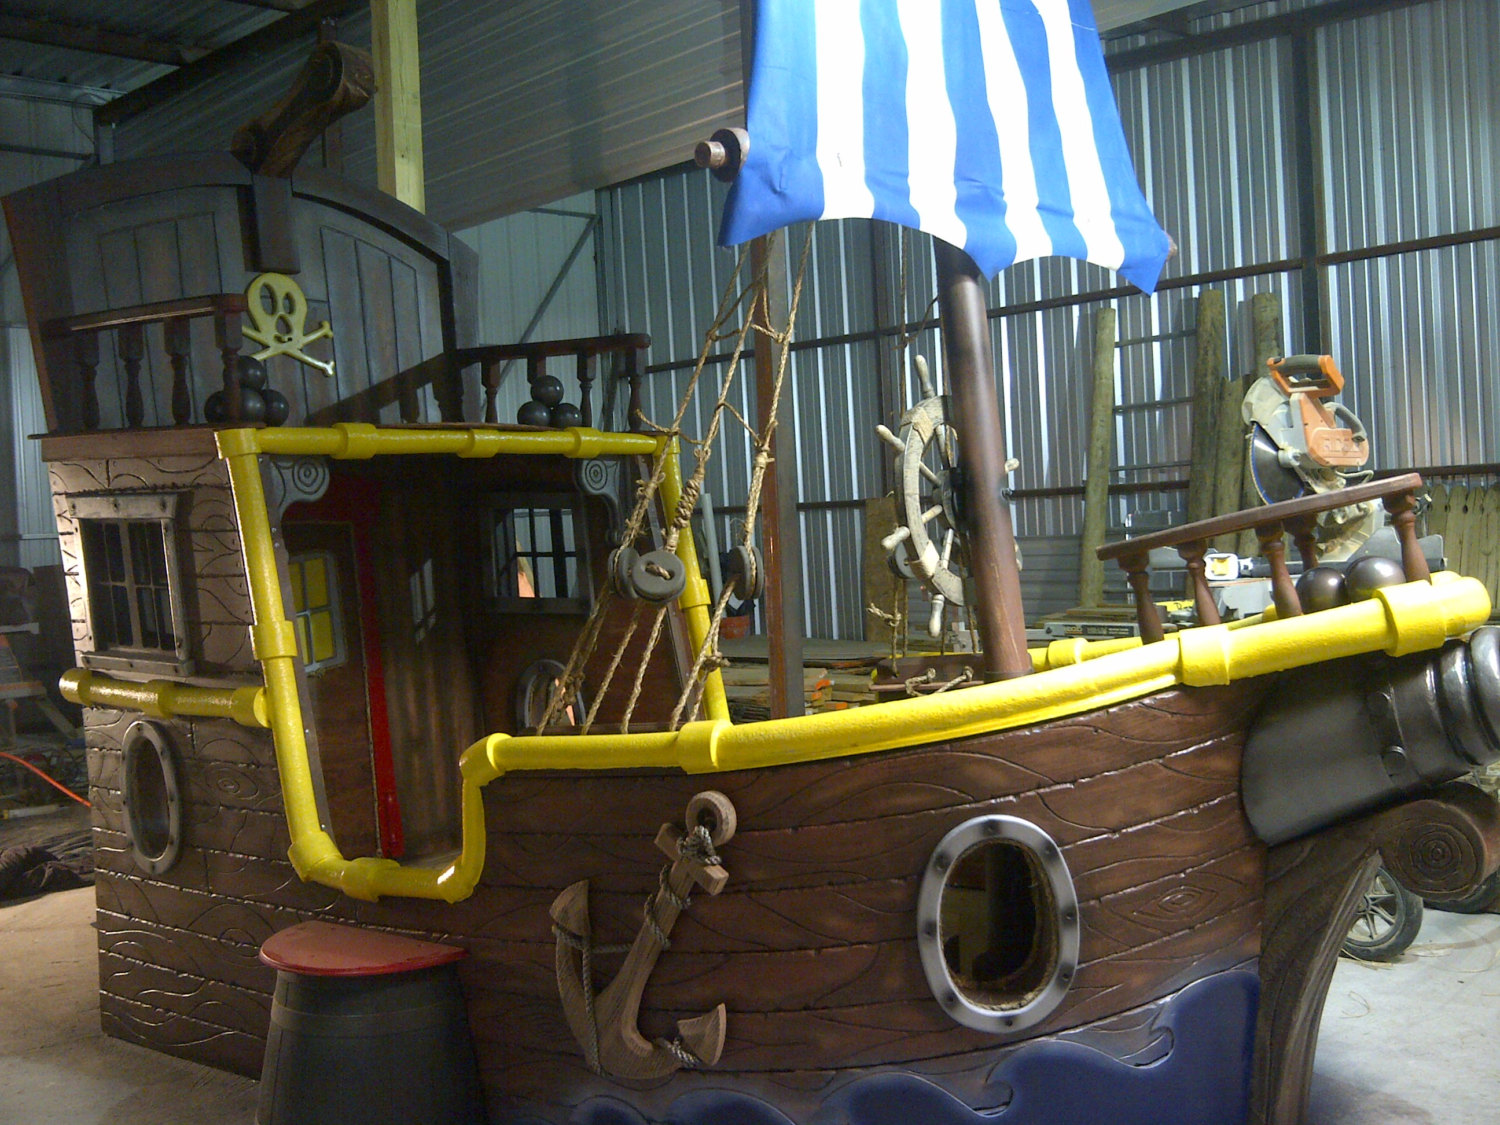 Pirate Ship Bunk Beds | Little Tyke Pirate Ship | Little Tikes Pirate Bed